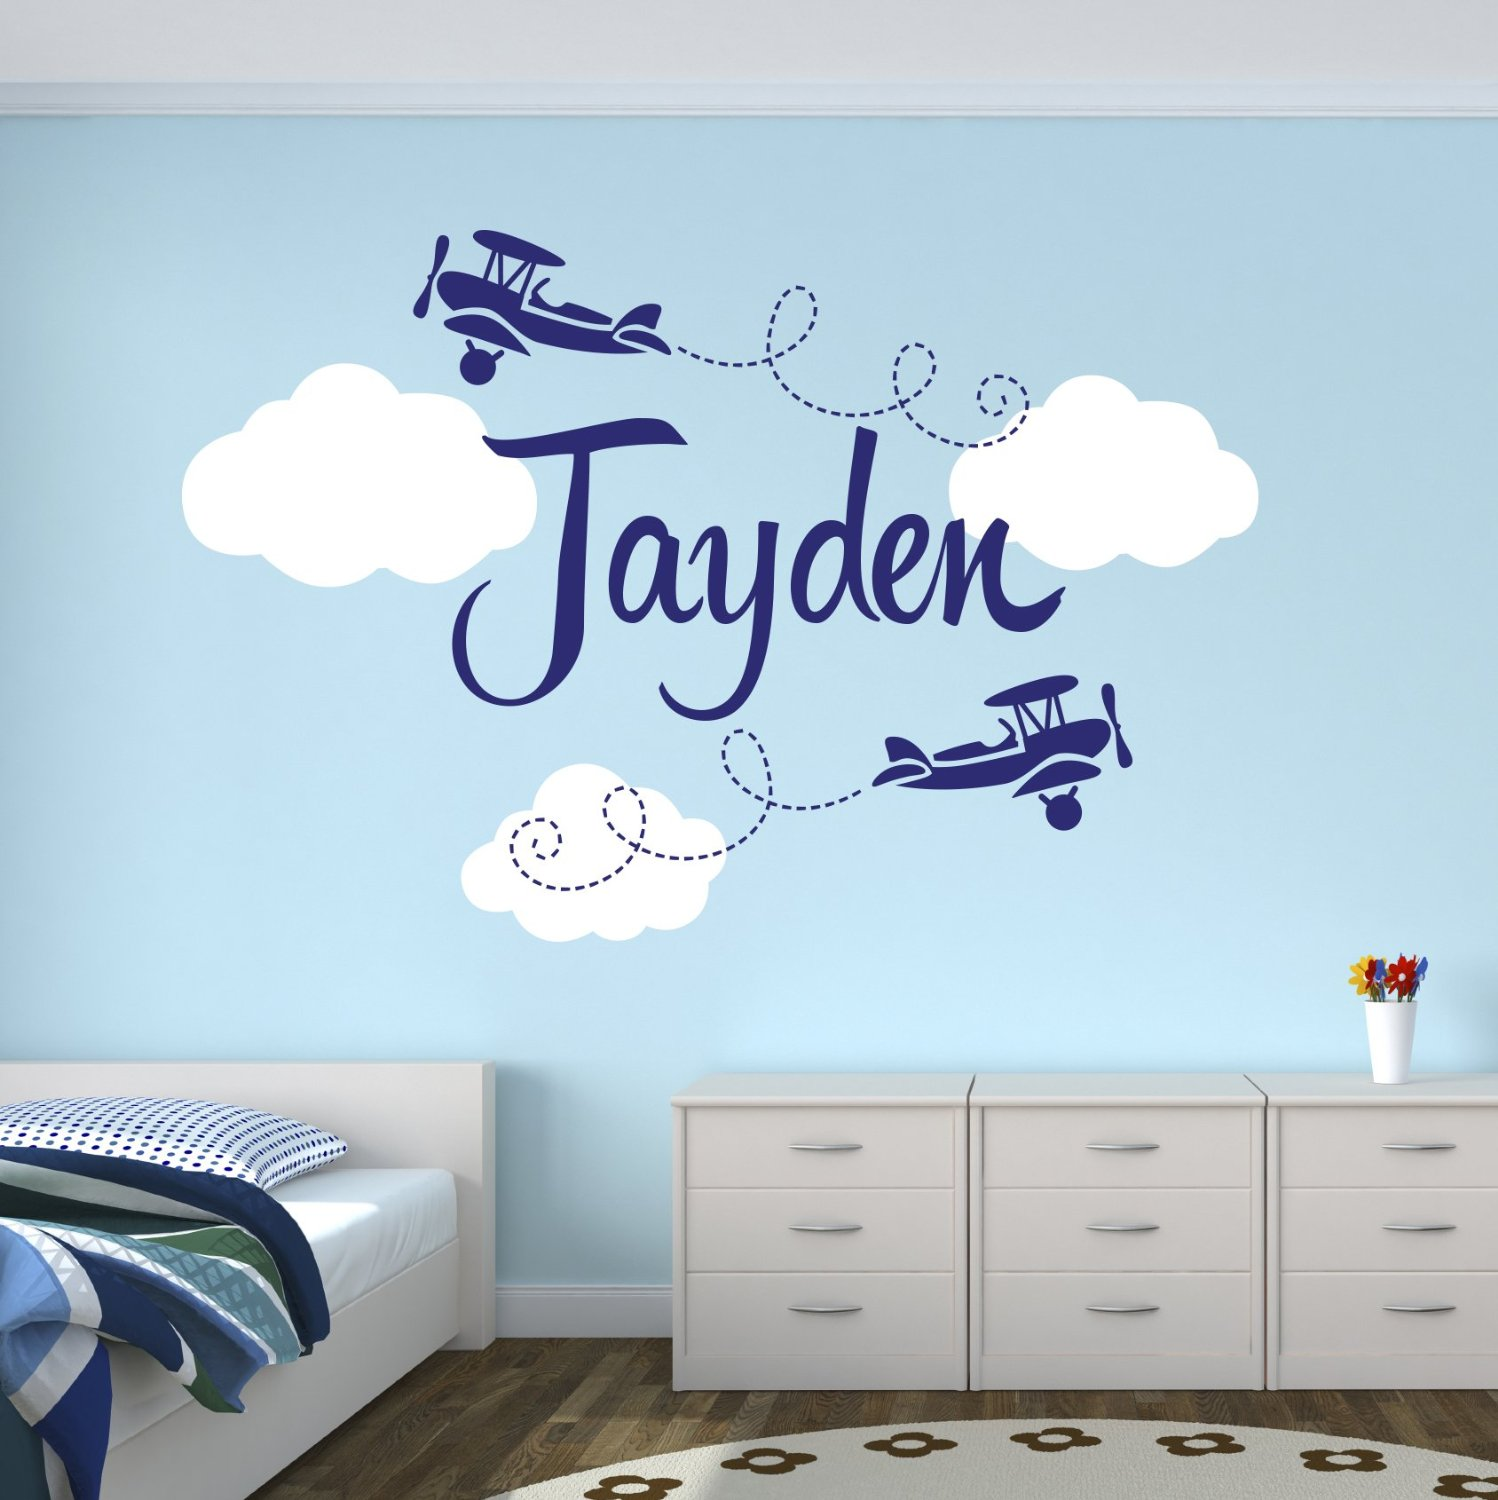 Personalized Airplane Name Clouds Decal Nursery Decor -Home decoration kids Decal Children Room Decor Vinyl Wall sticker A-90 image